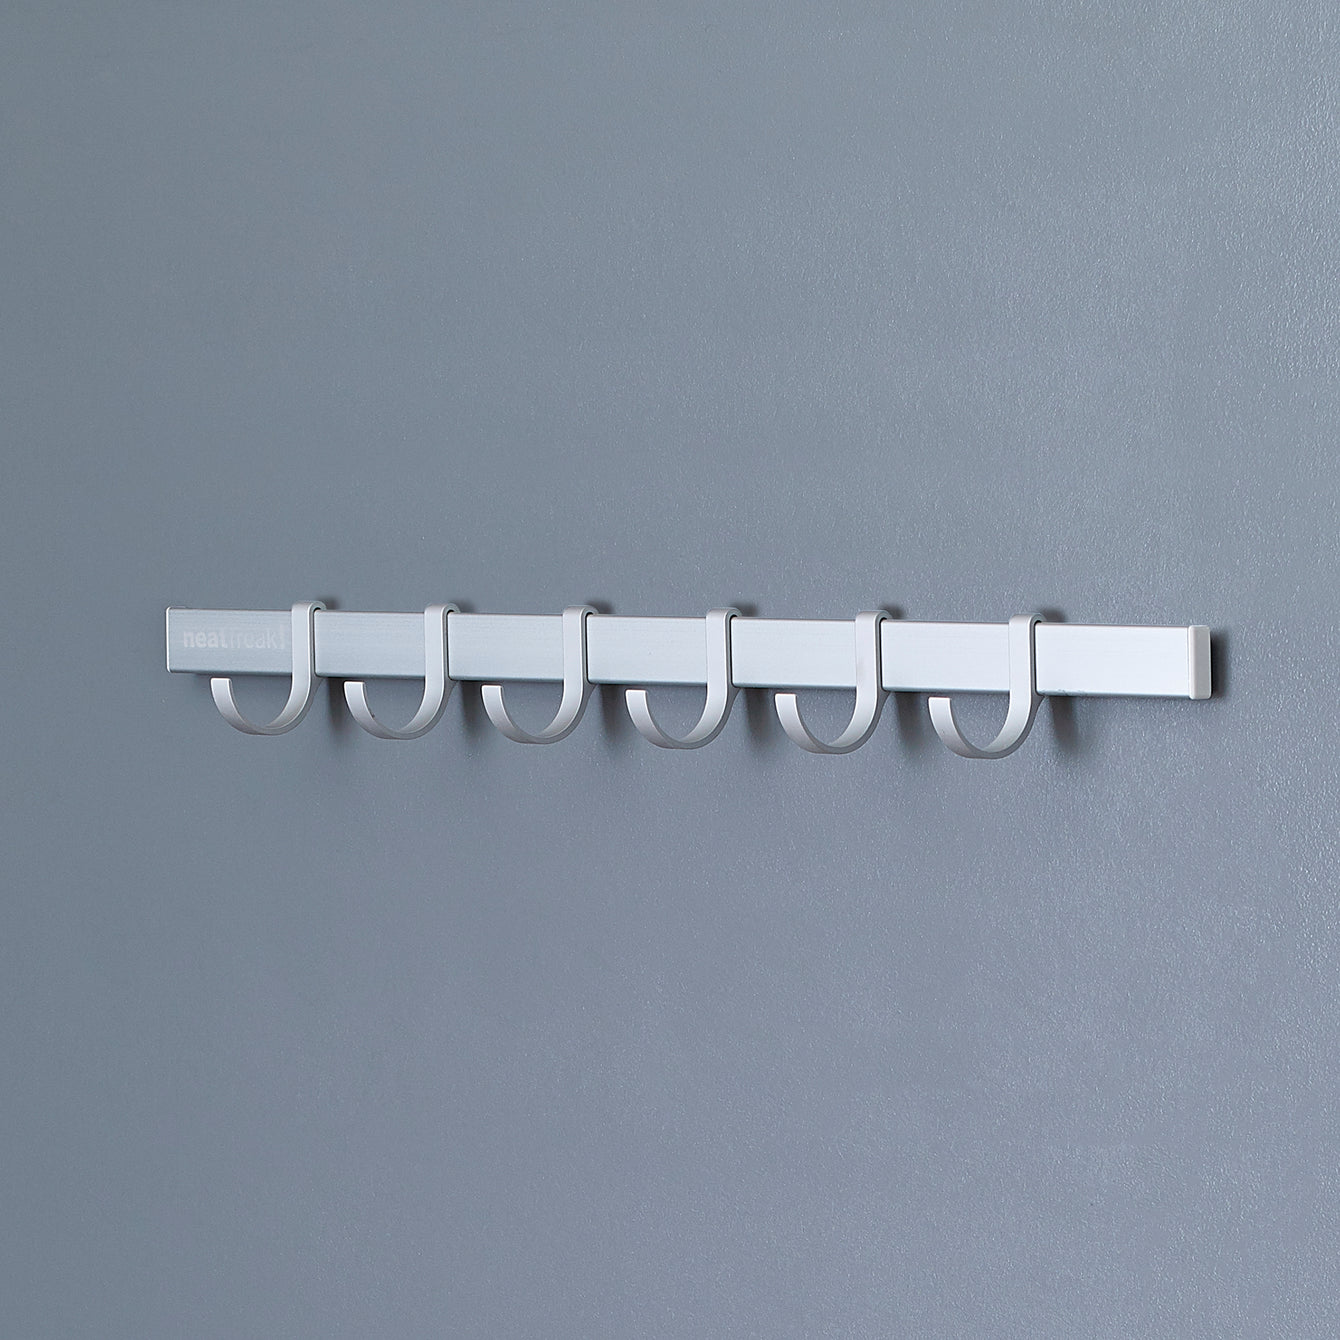 "Neat-trax™ System Wall-Mounted 20.5"" Aluminum Track with 6 U-Hooks – Style 1031"